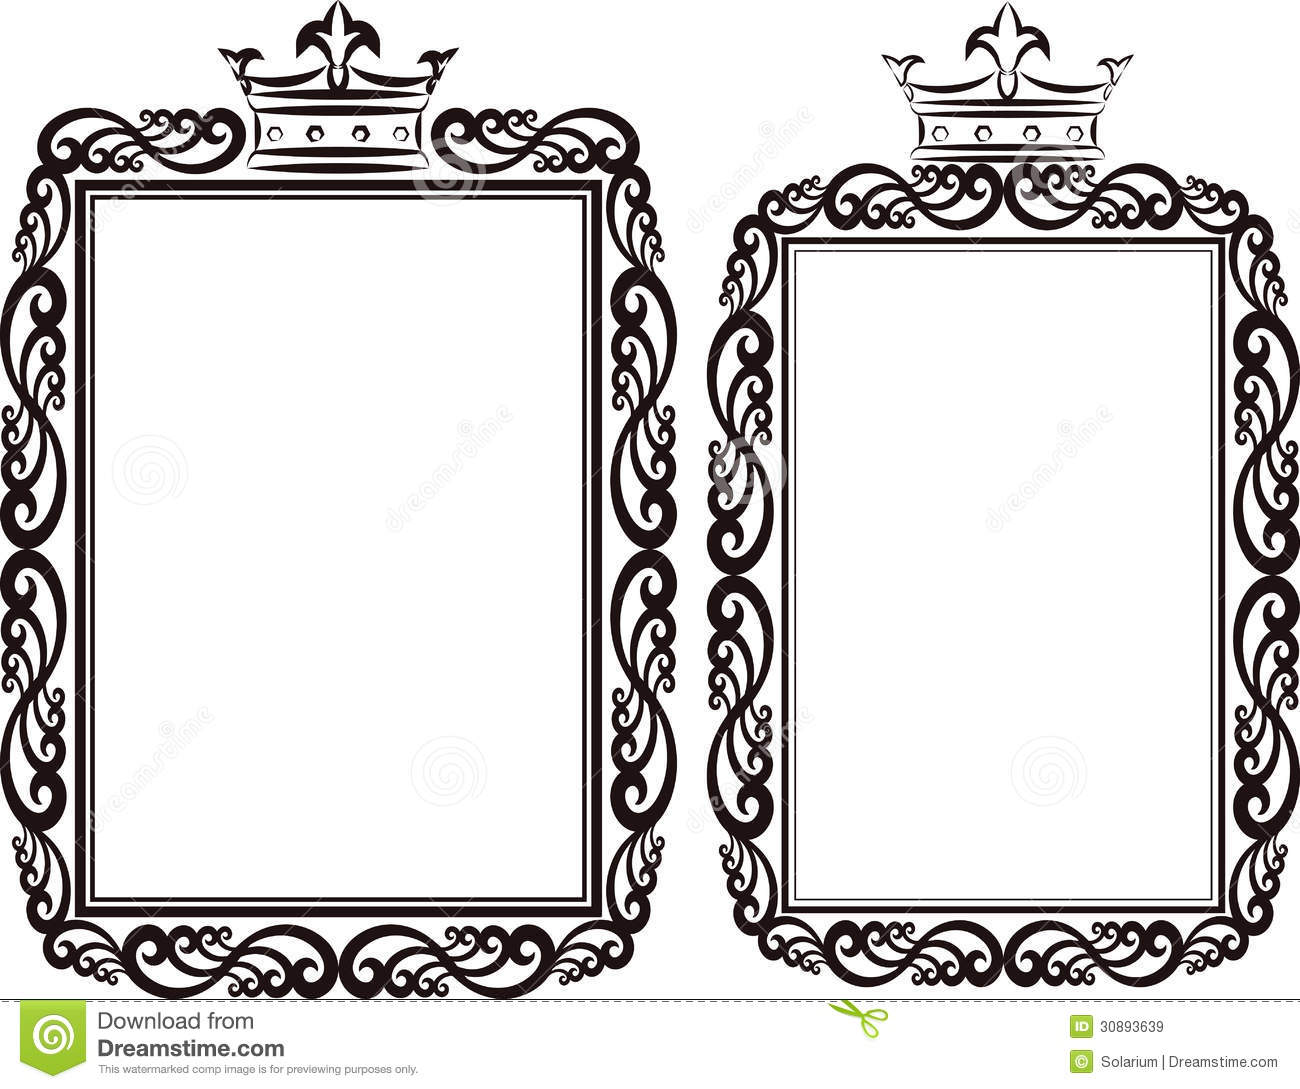 royal border stock vector illustration of contour crowns 30893639 rh dreamstime com